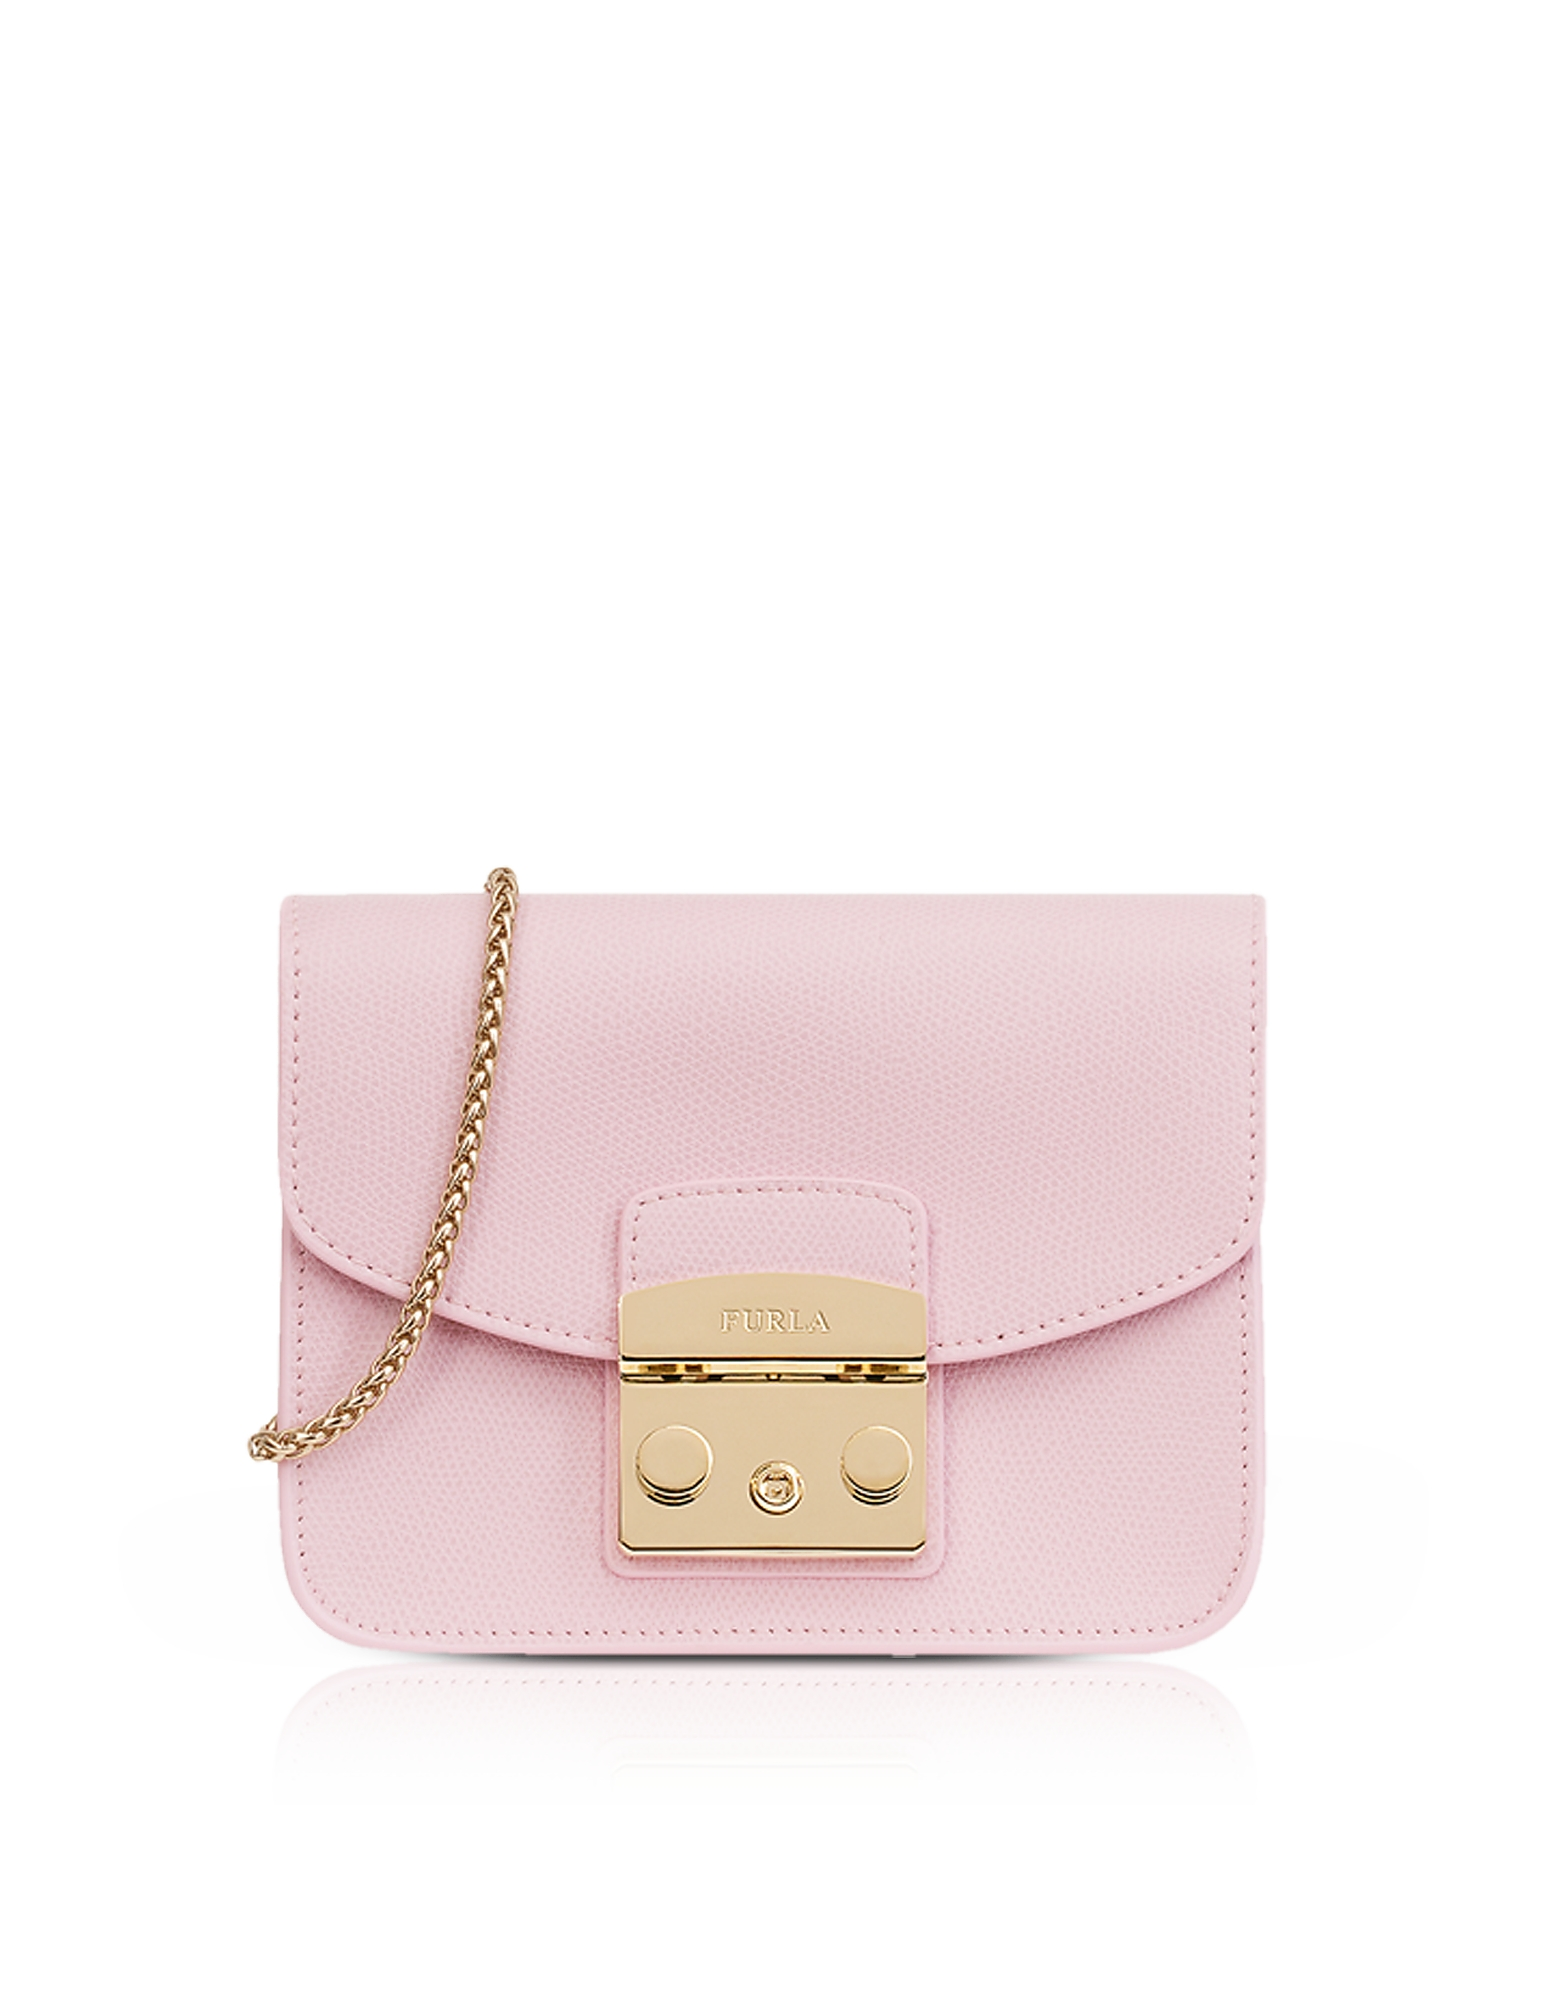 Furla Handbags, Lizard Printed Leather Metropolis Mini Crossbody Bag